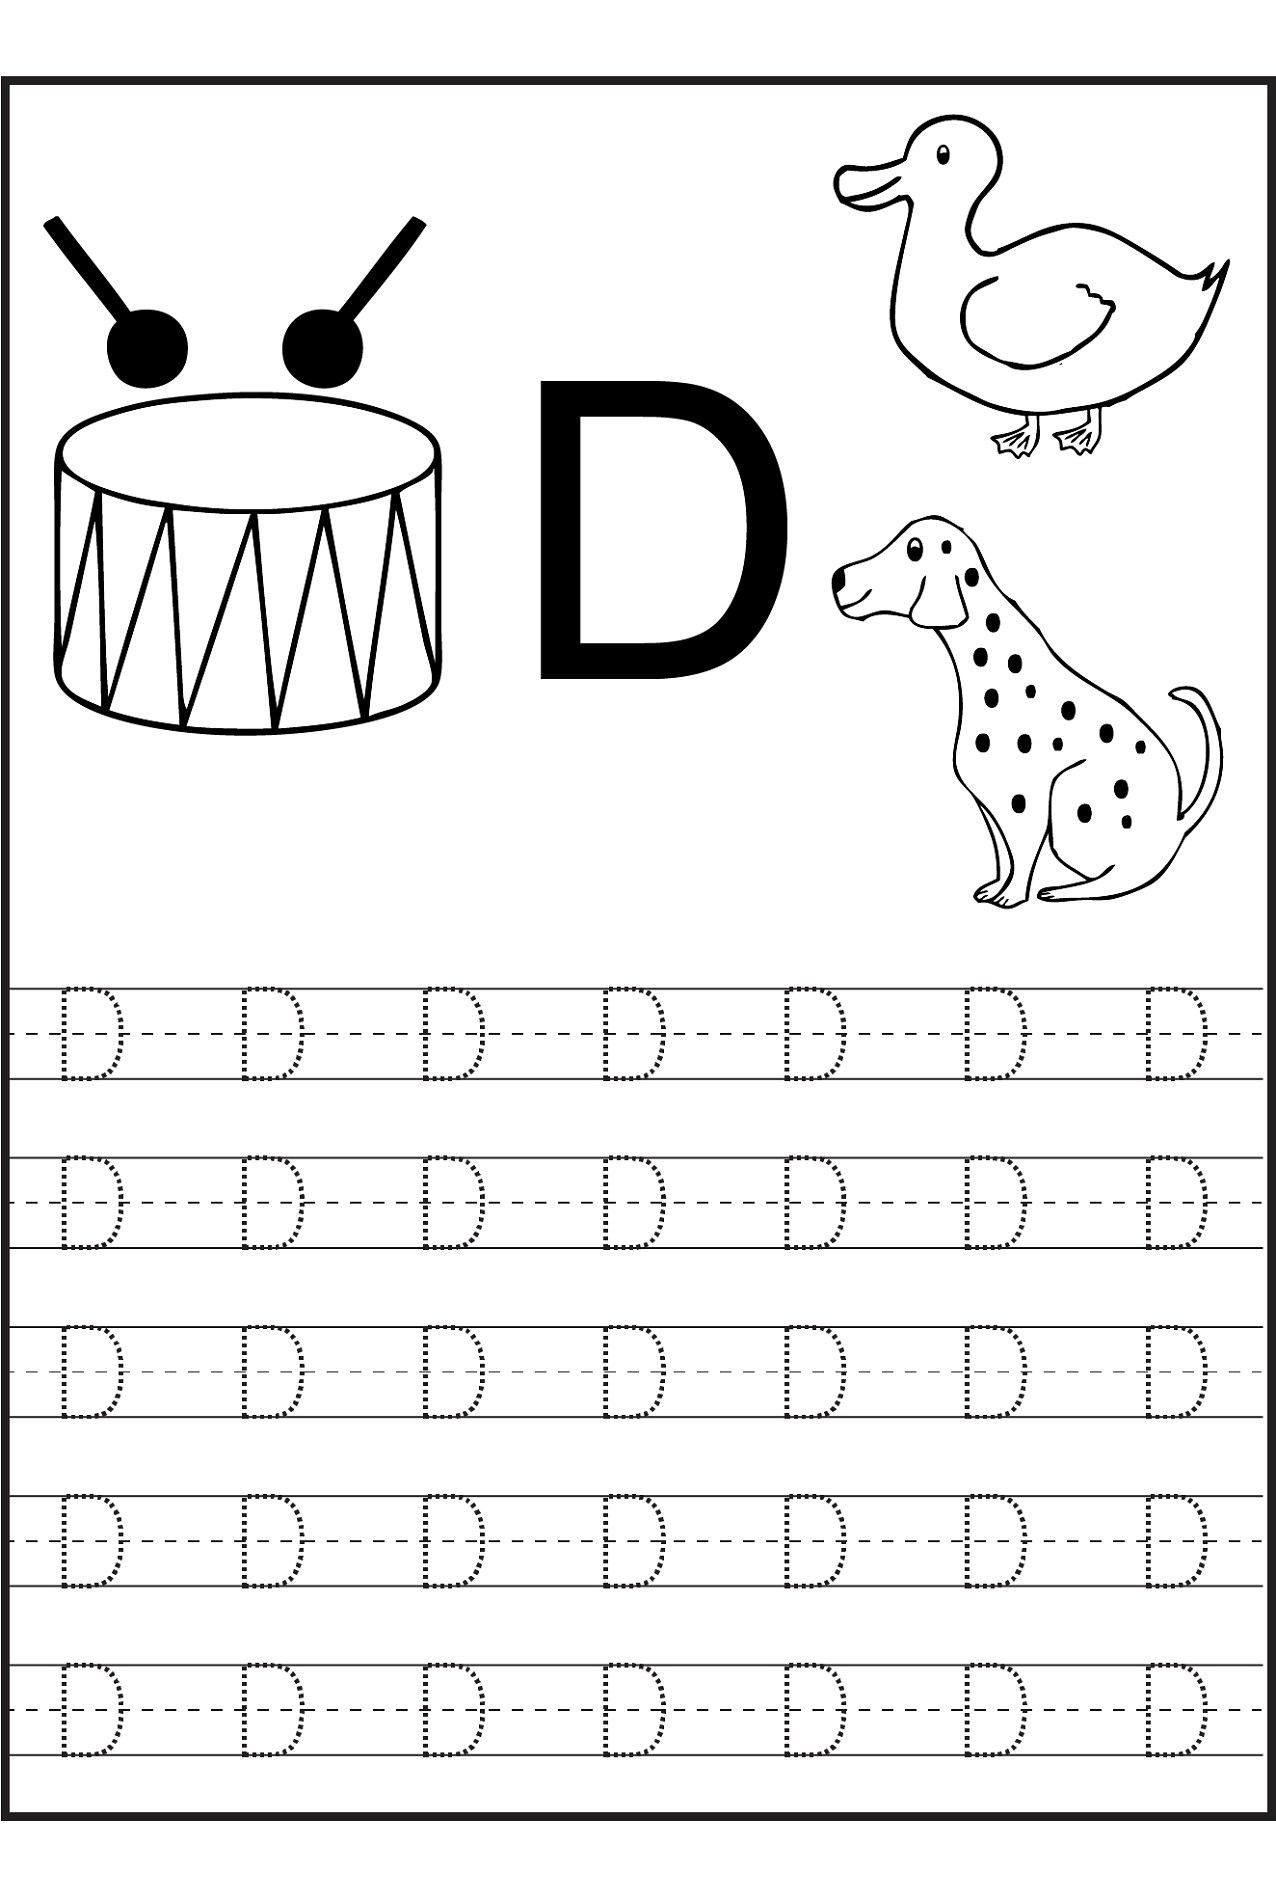 3 Printable Letter J Worksheets Animal 4 Worksheet